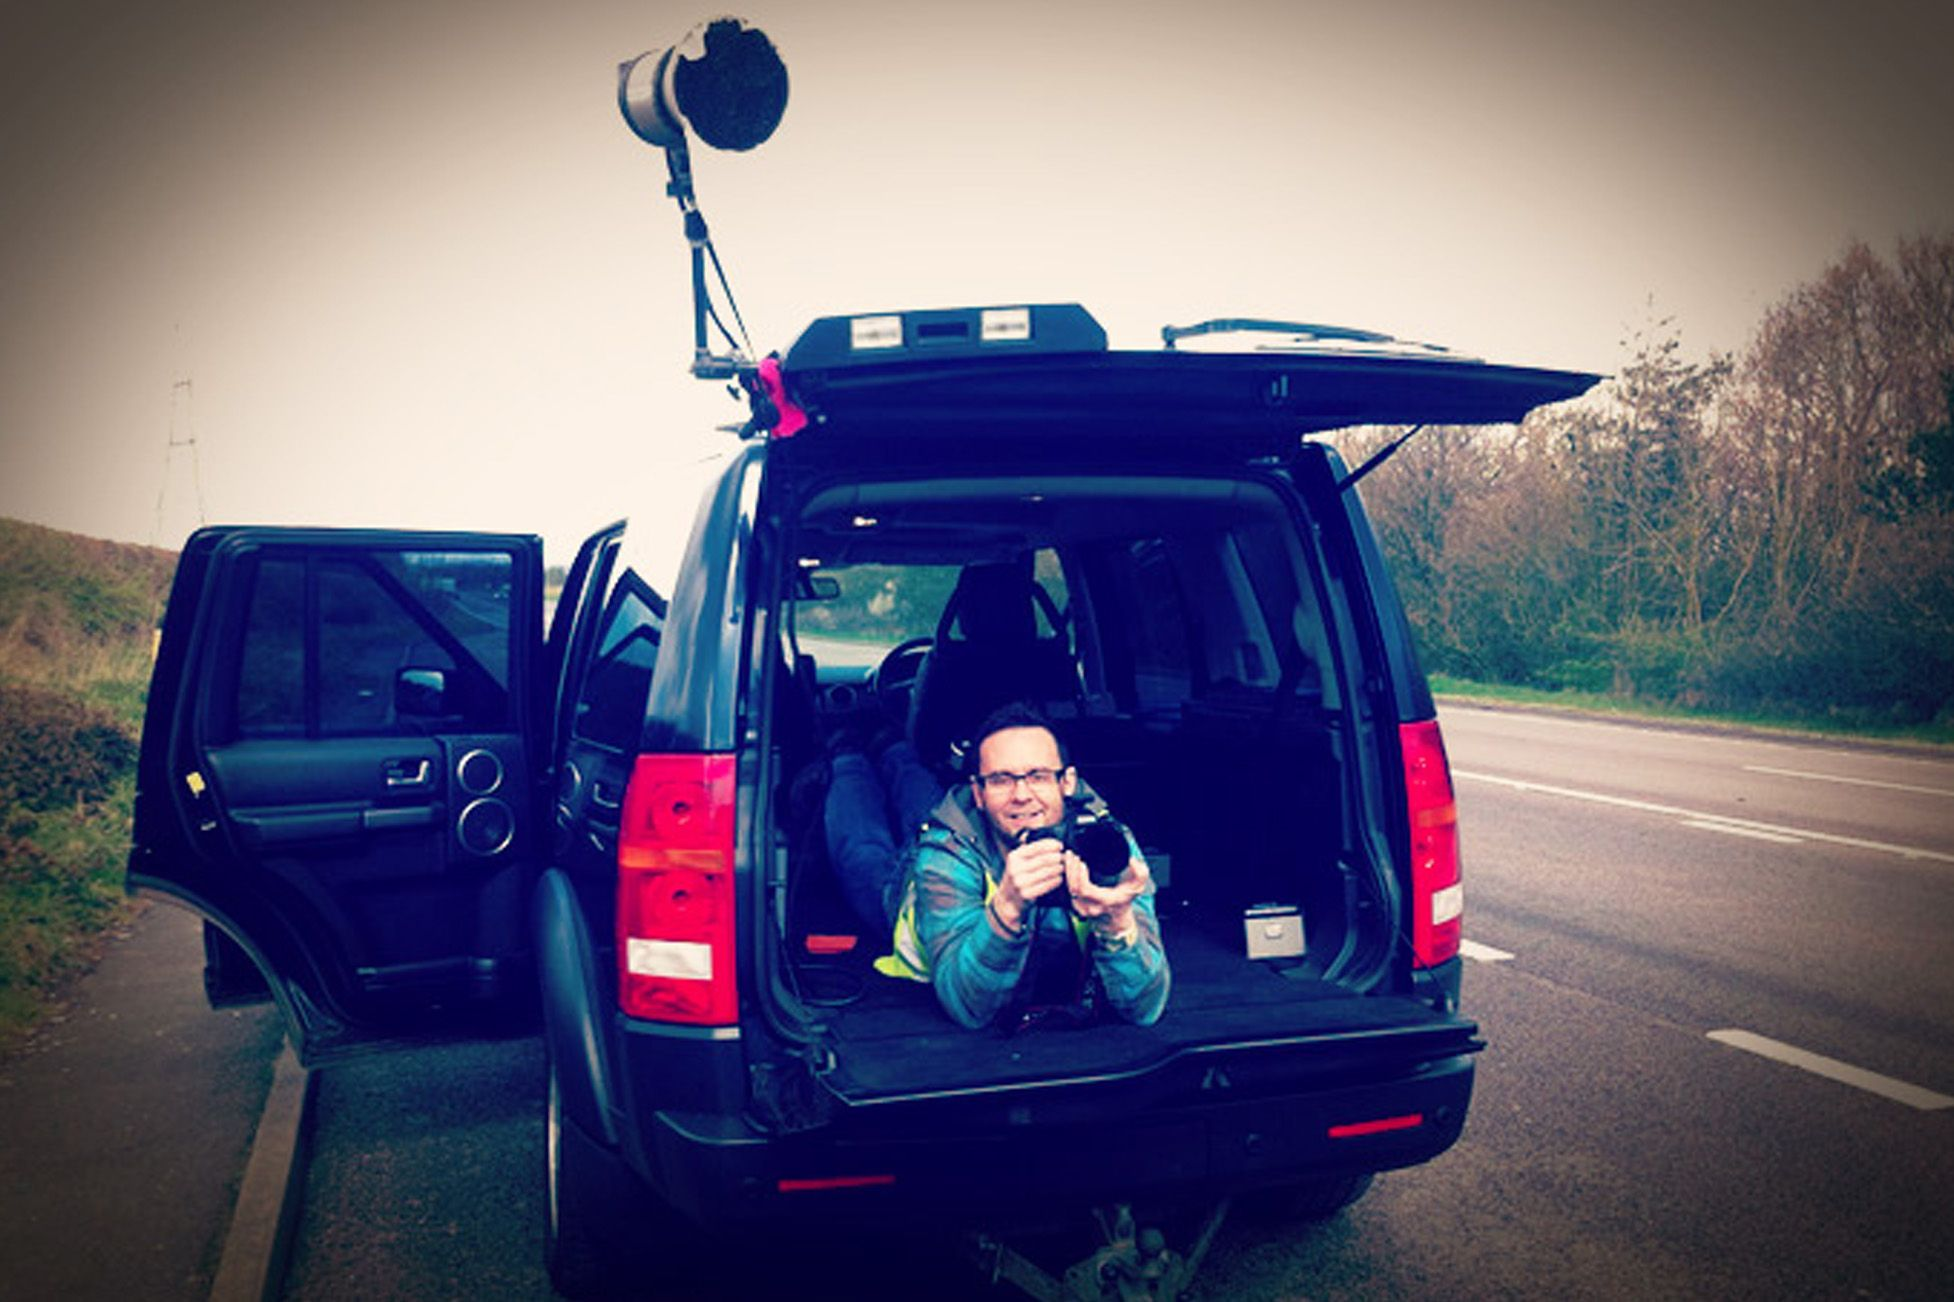 Just what is photographer Dave doing in the back of that 4x4? 10